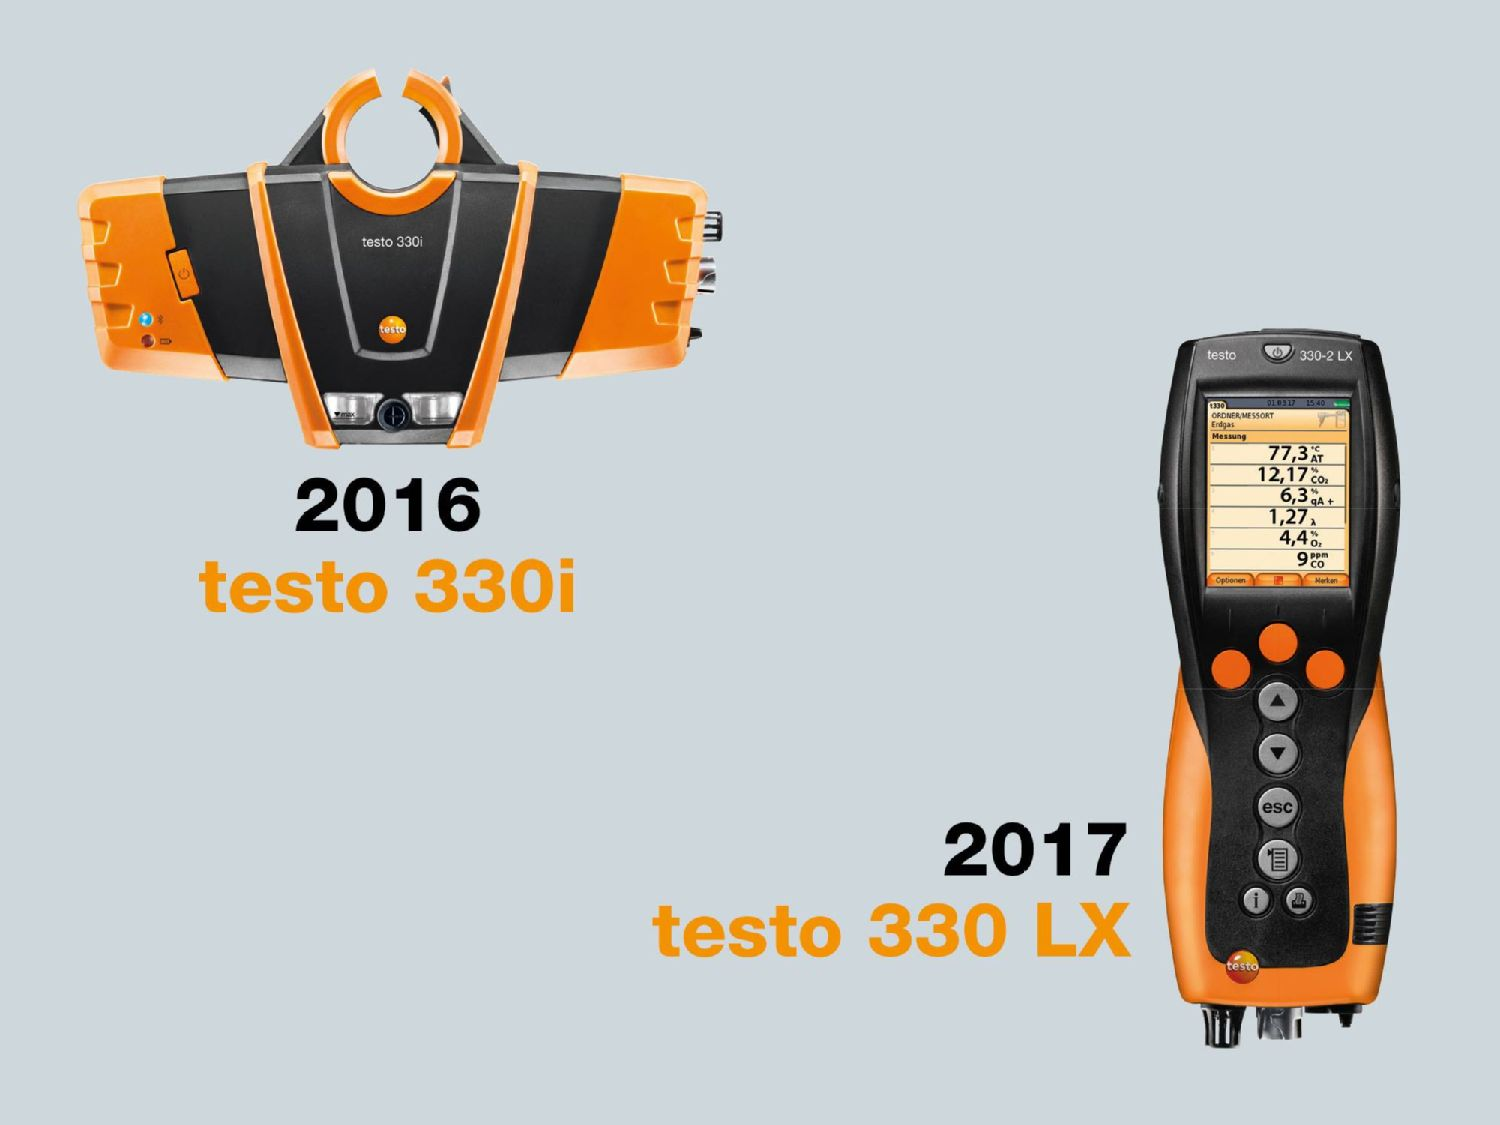 testo flue gas analyzers 2016-2017